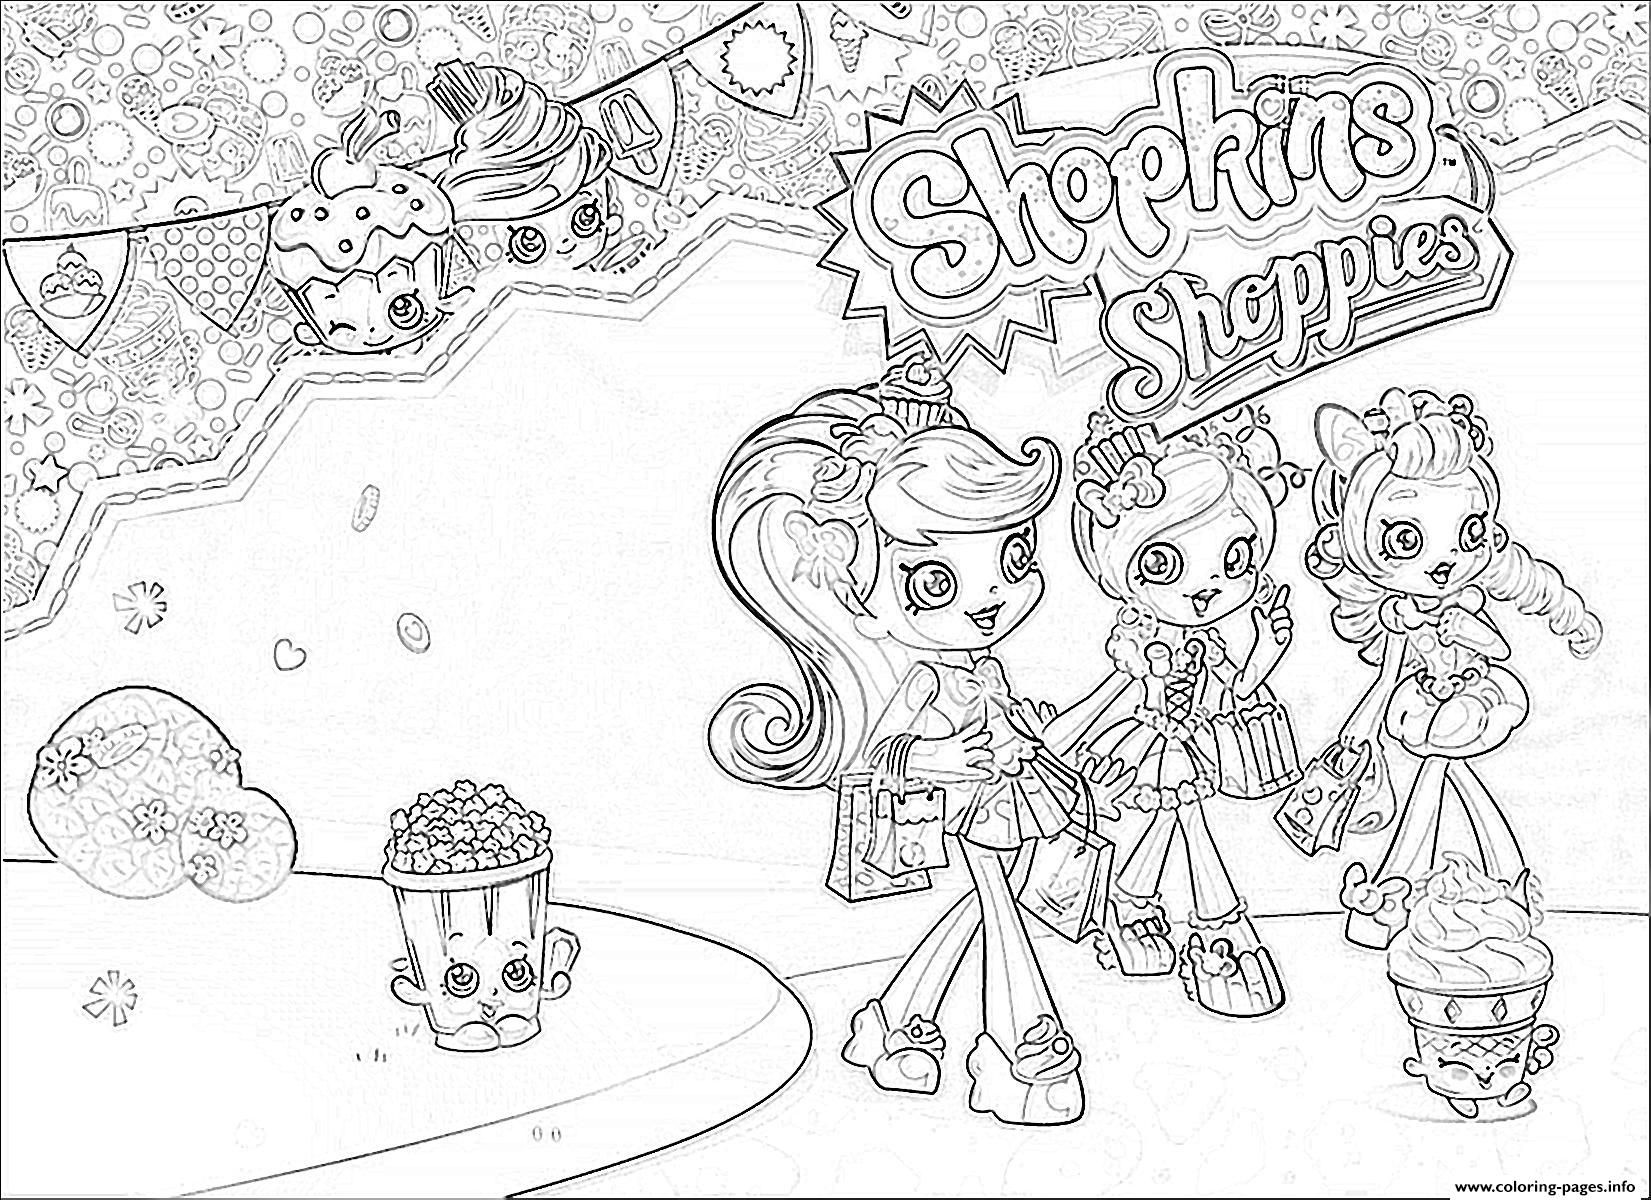 print shopkins shoppies girls coloring pages favorite places